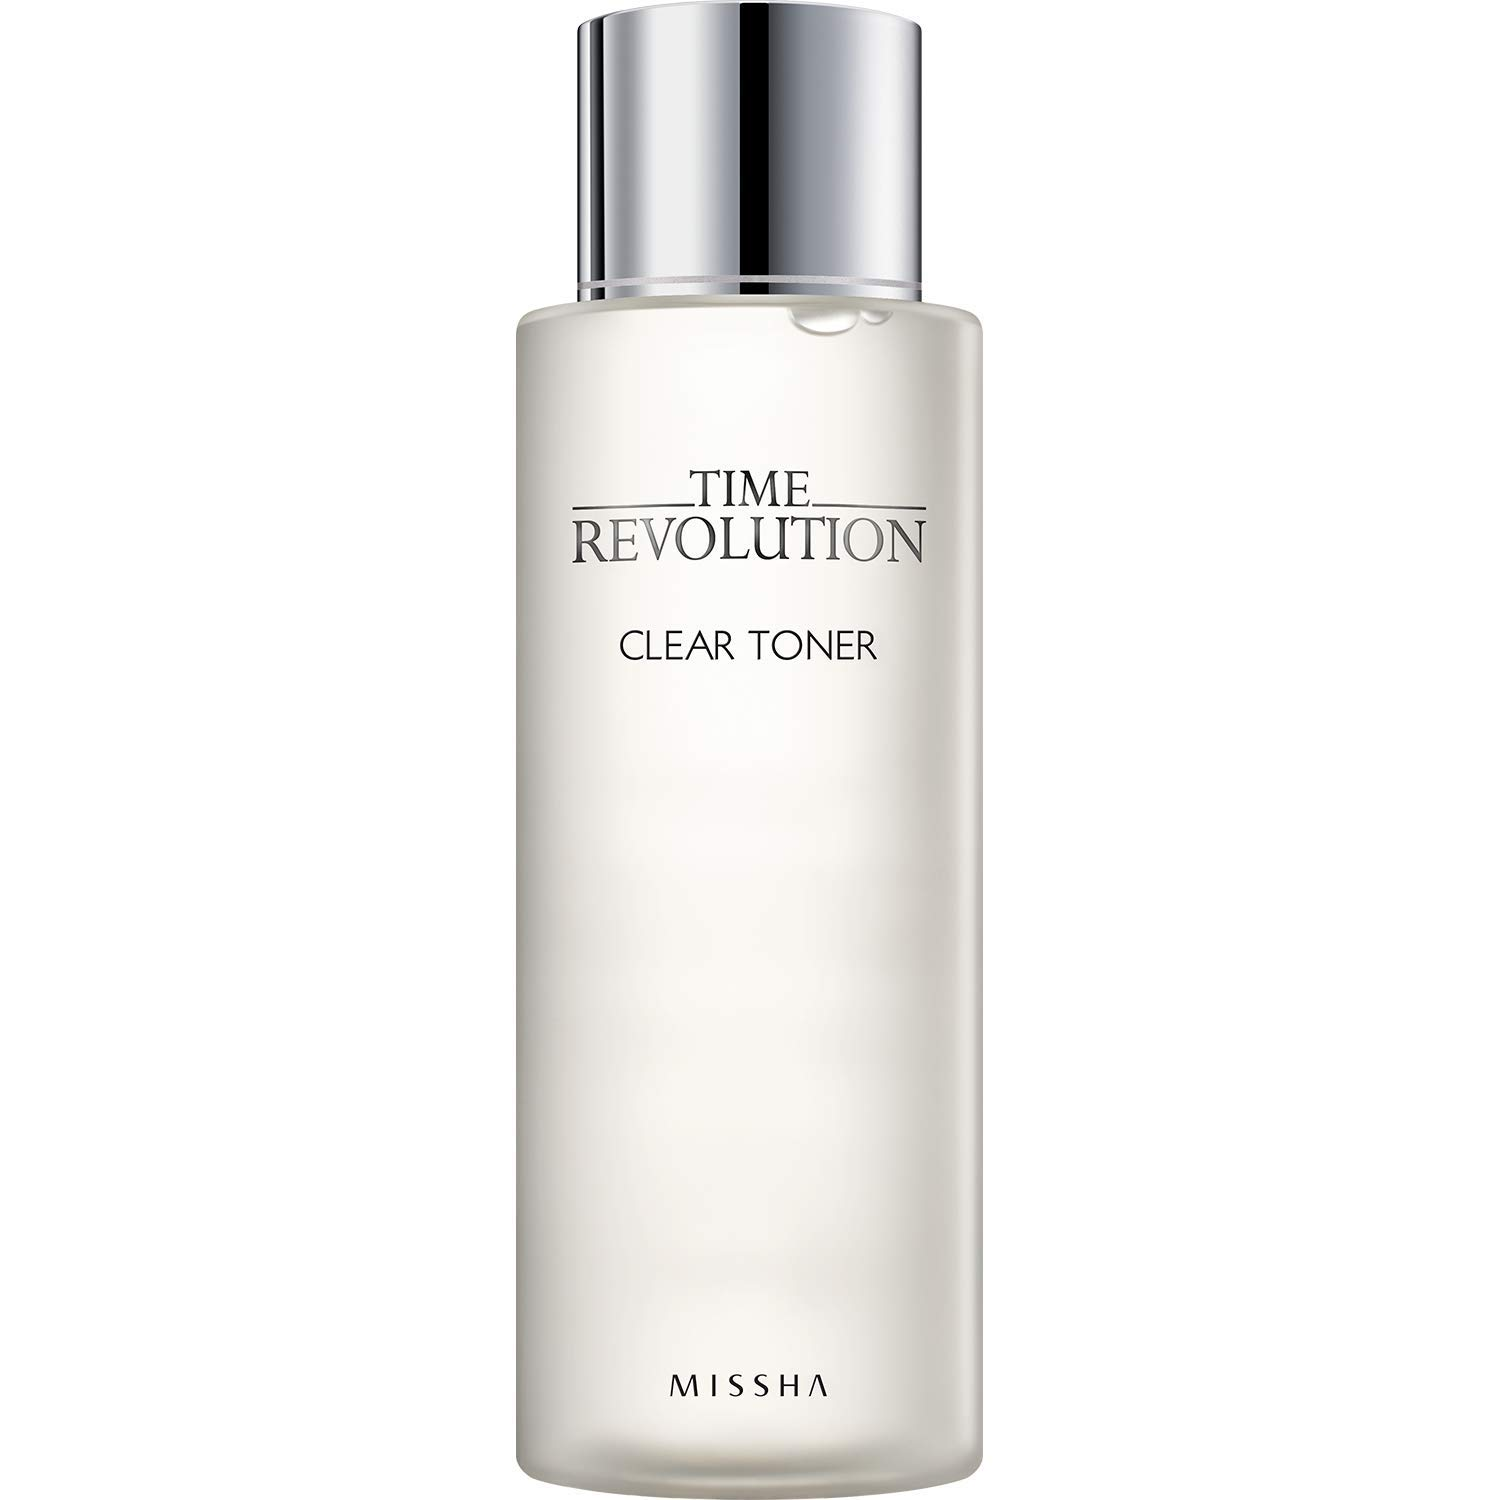 Time Revolution Toner by Missha